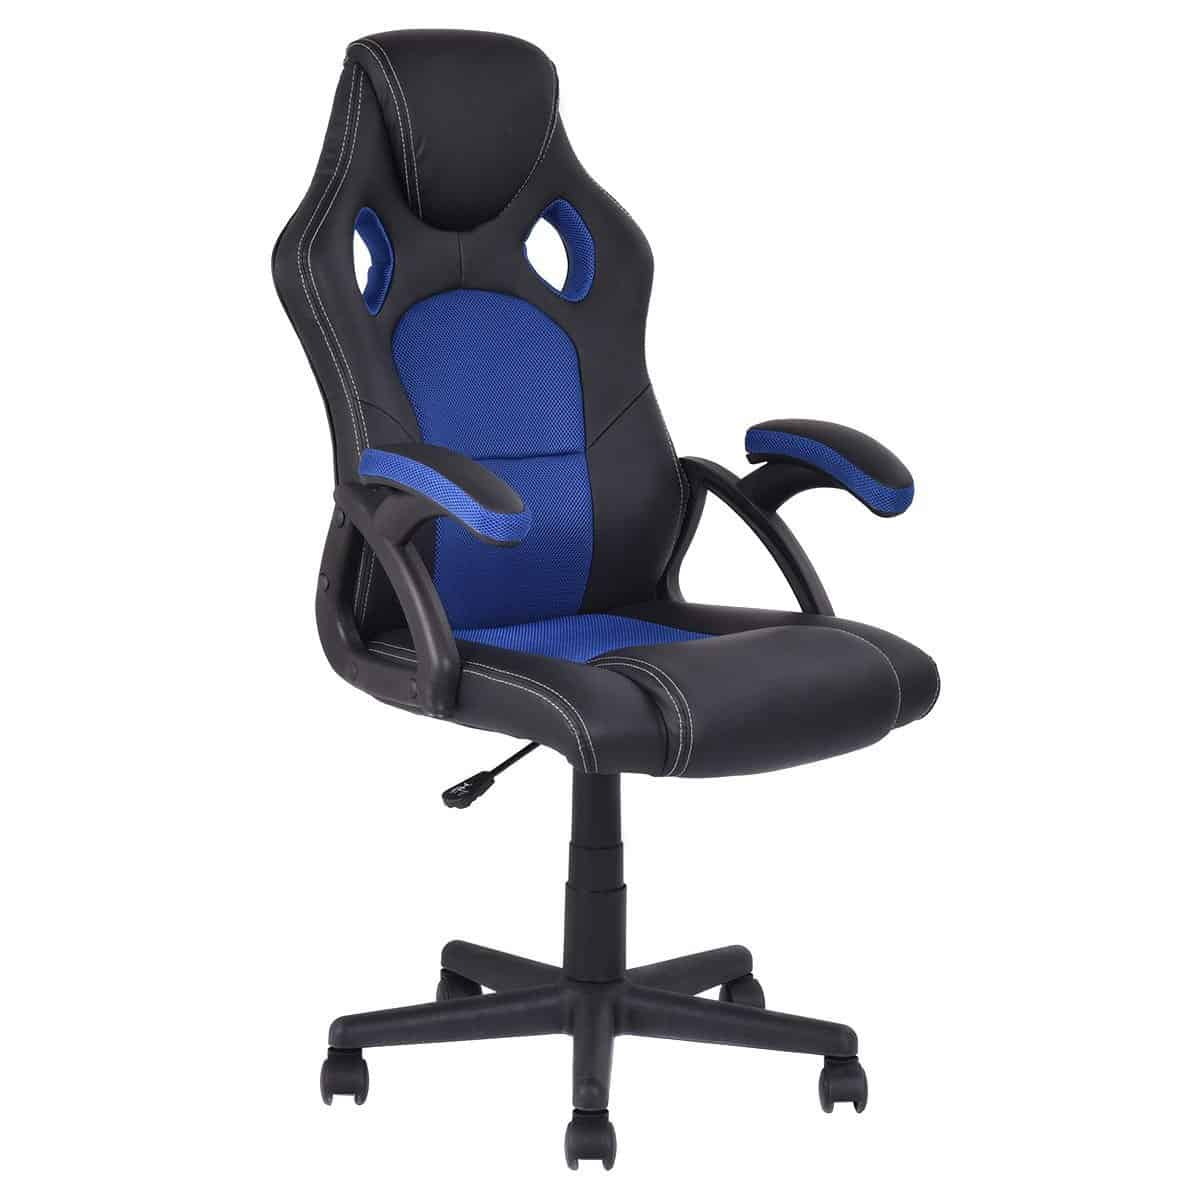 Giantex-PU-Leather-Gaming-Chair